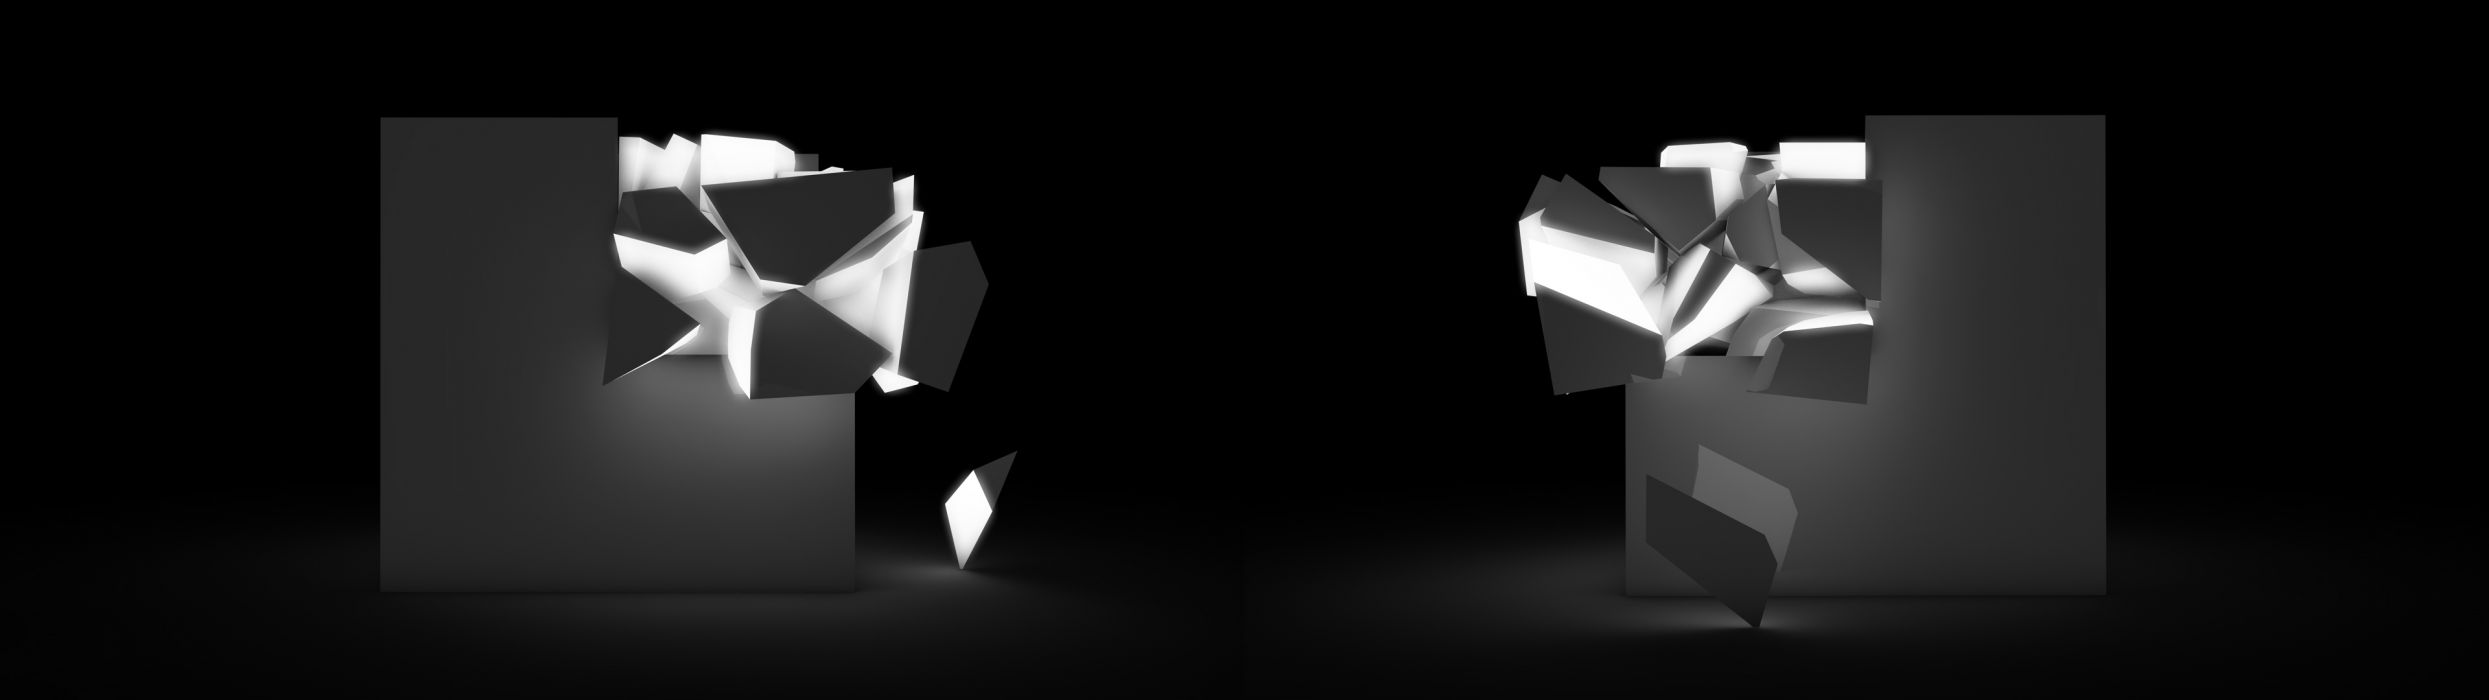 abstract black minimalistic dual screen cubes monochrome greyscale wallpaper